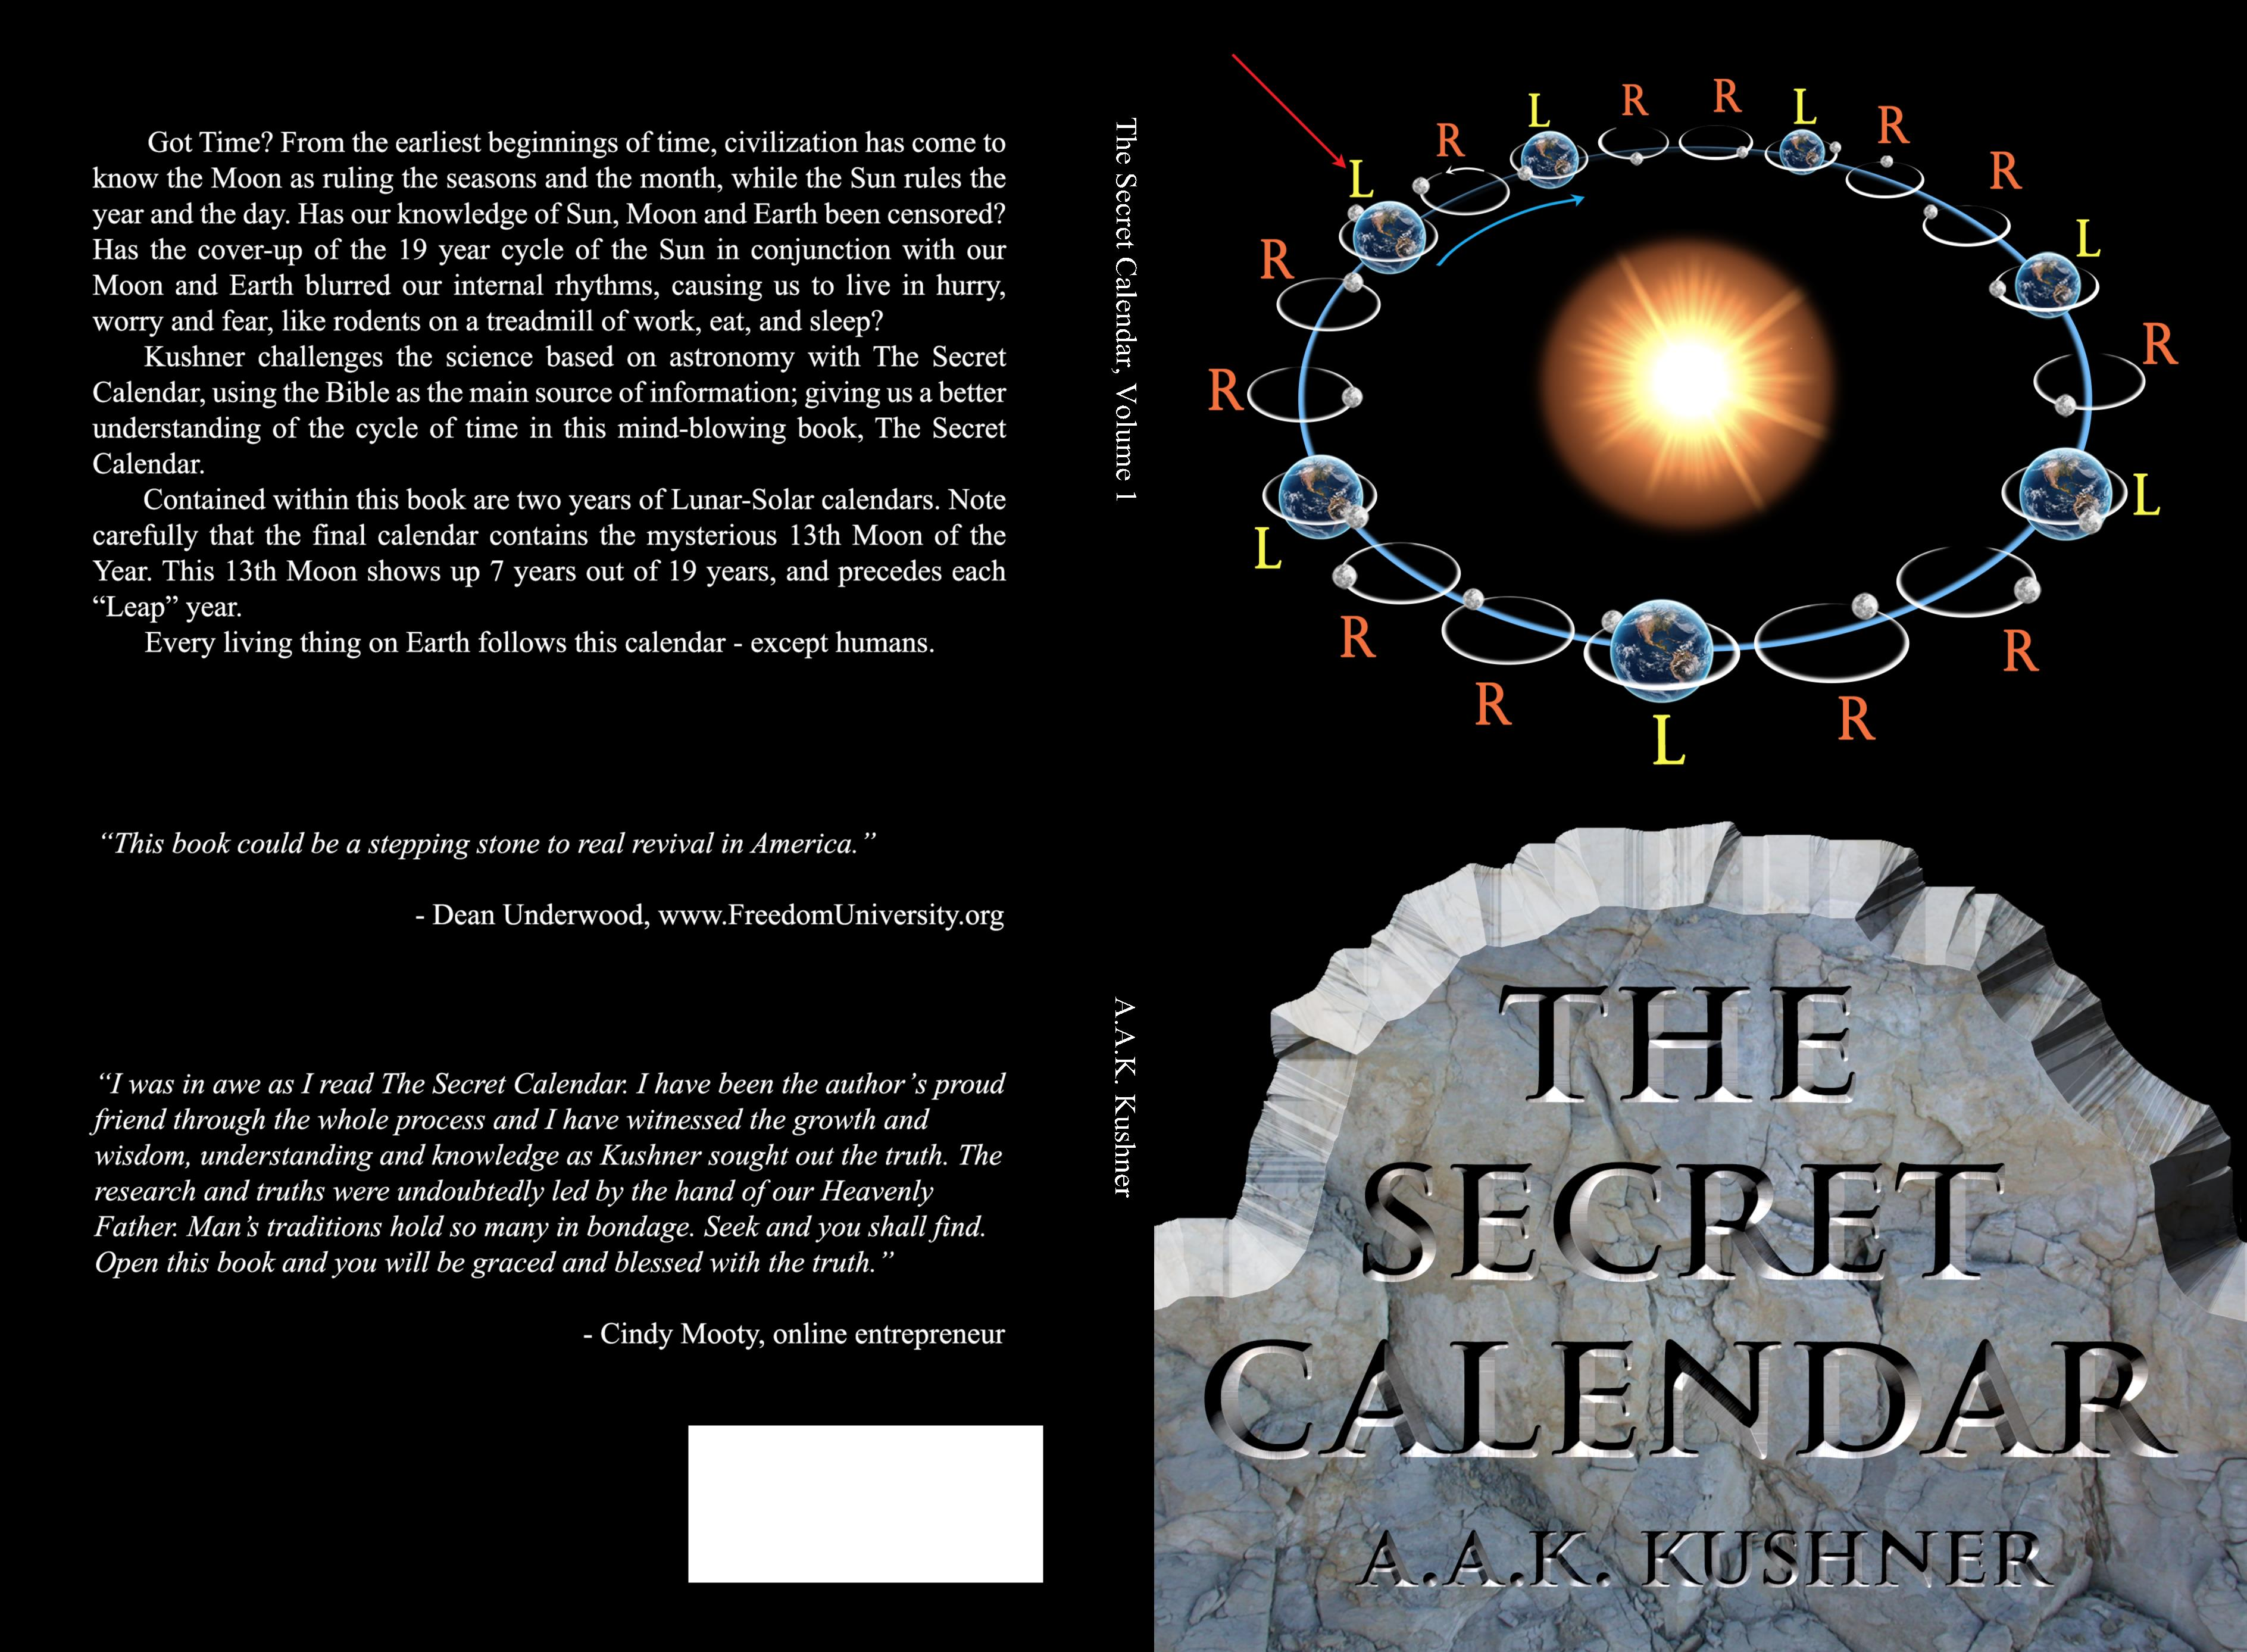 The Secret Calendar, Volume 1 cover image